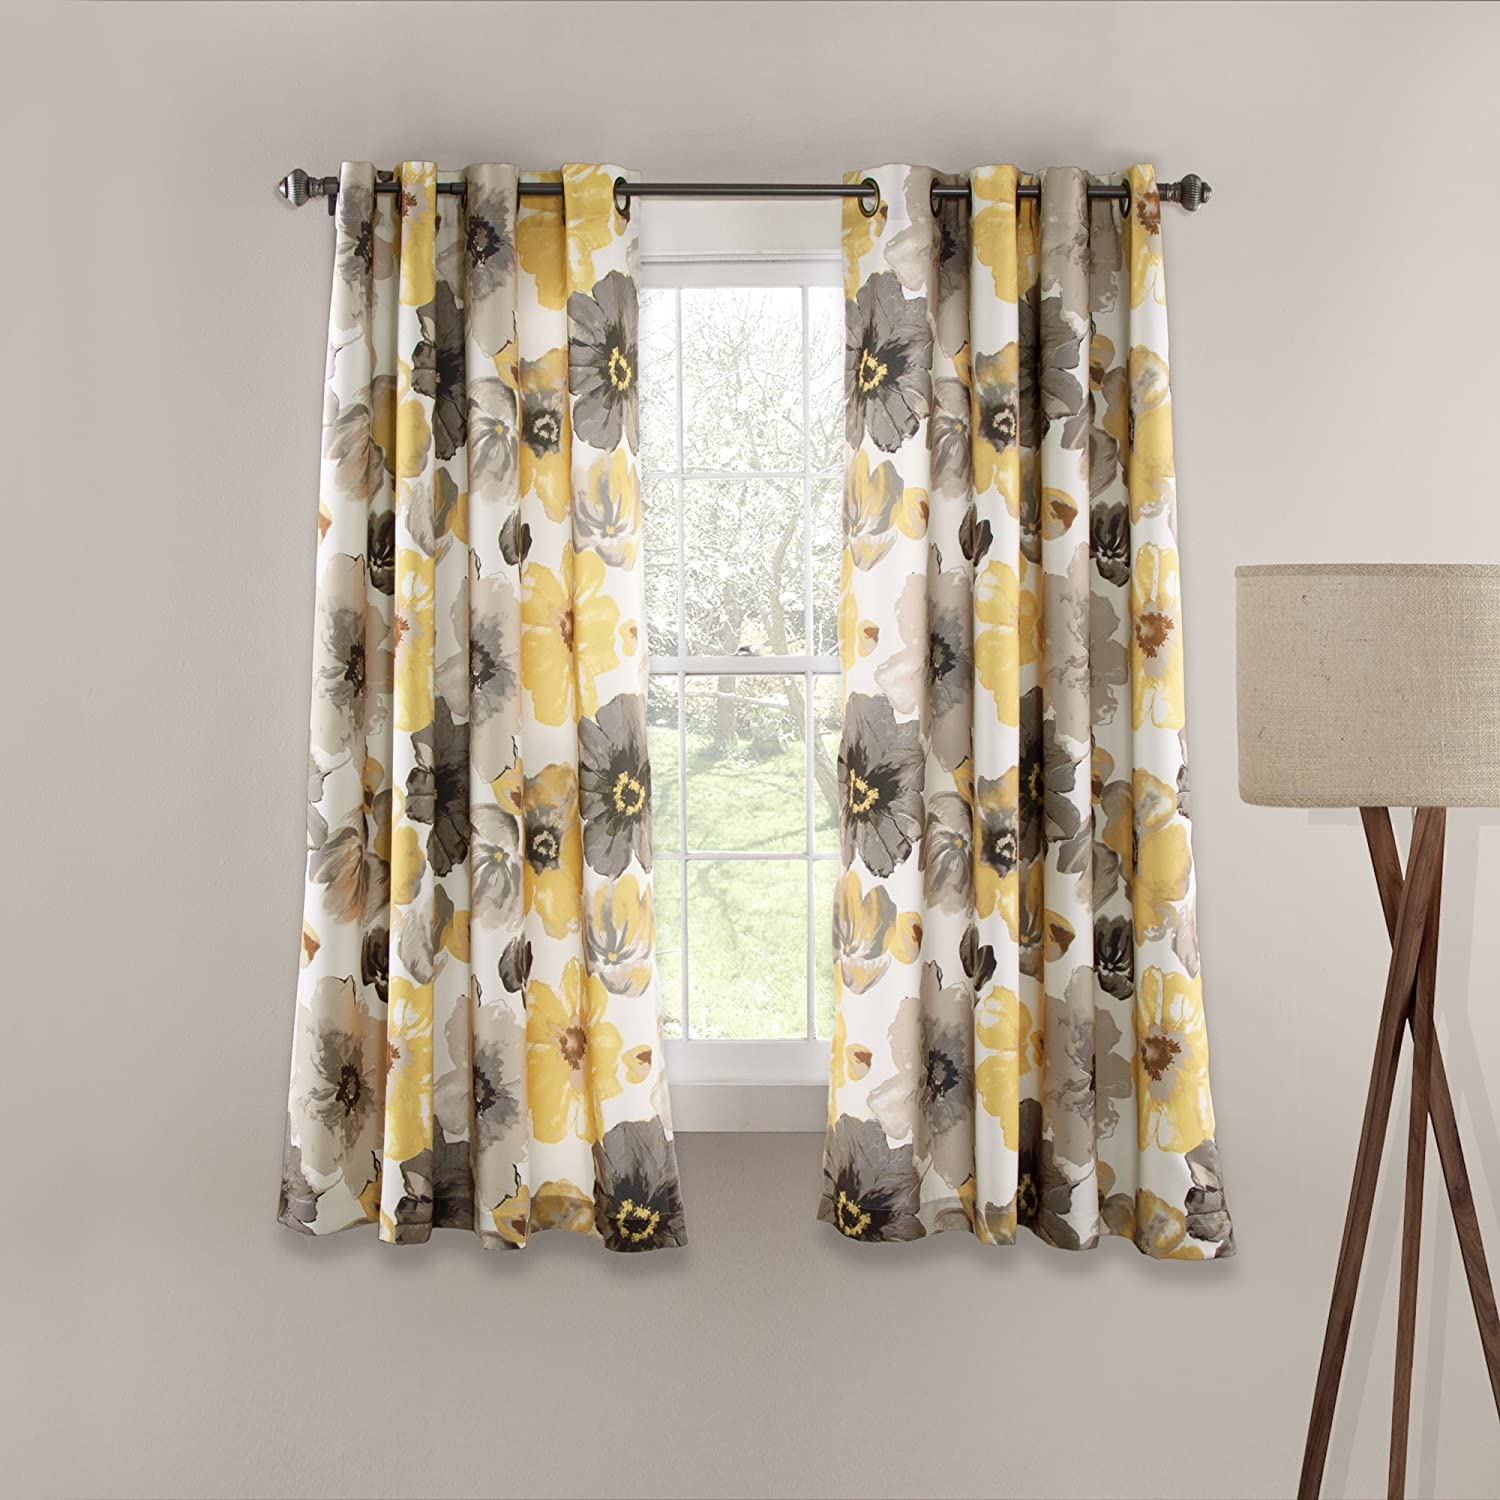 "Lush Decor Leah Floral Room Darkening Yellow and Gray Window Curtains Panel Set for Living Room, Dining Room, Bedroom (Pair), 63"" x 52"""